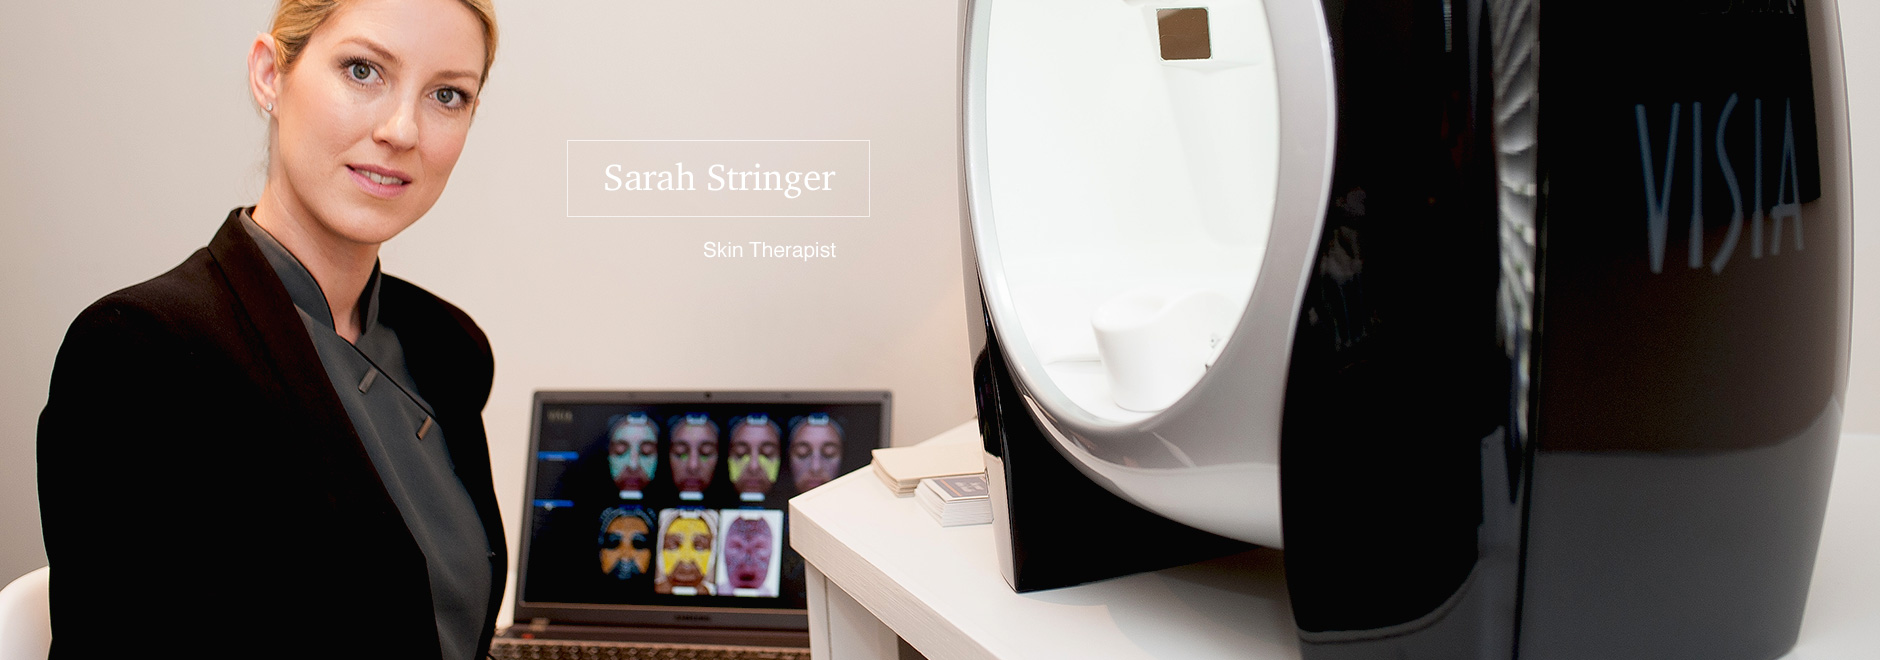 sarah-stringer-skin-therapist